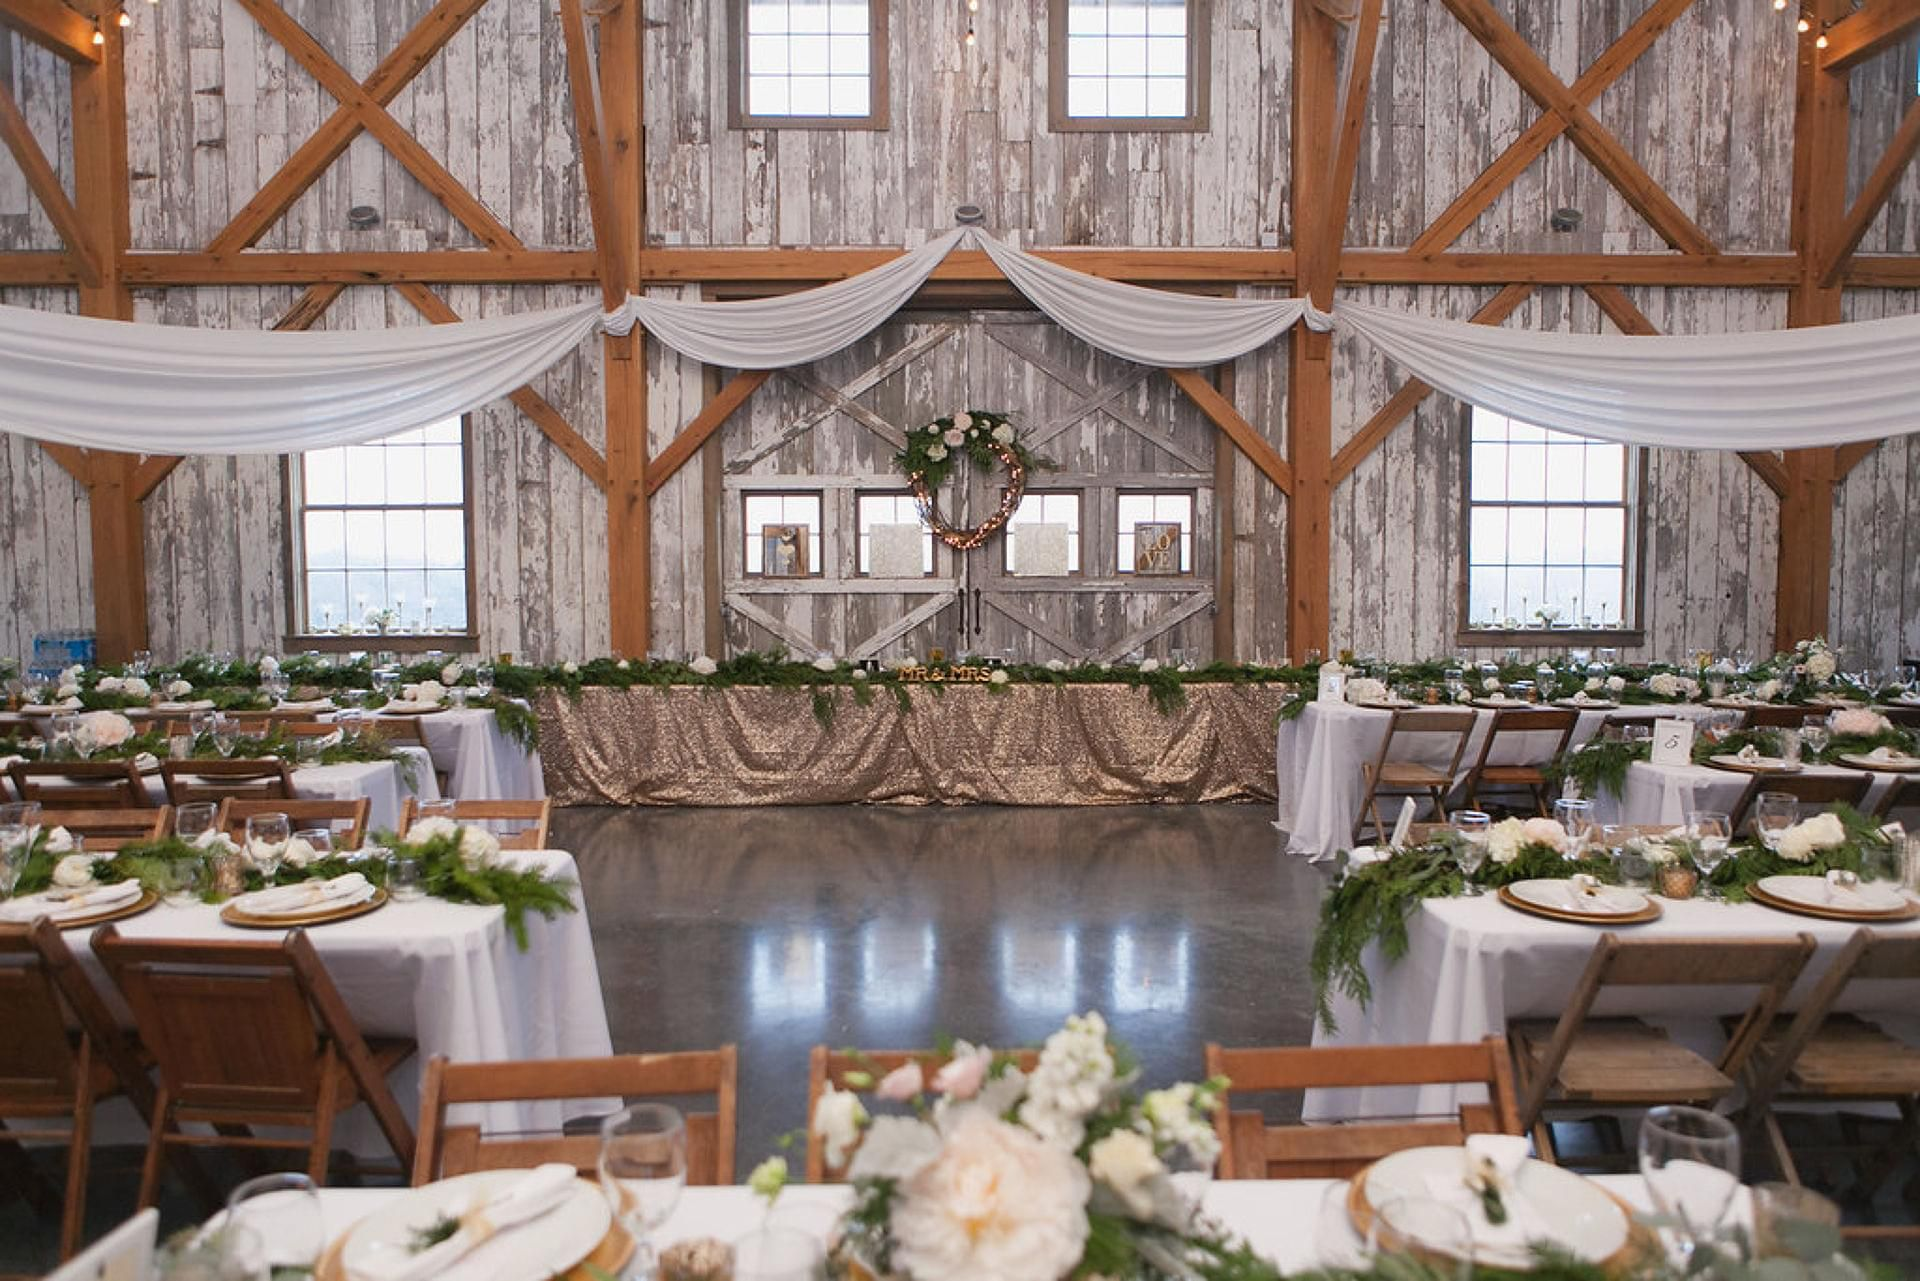 Glistening glamorous fall wedding at weston red barn farm kansas glistening glamorous fall wedding at weston red barn farm kansas city mo junglespirit Image collections